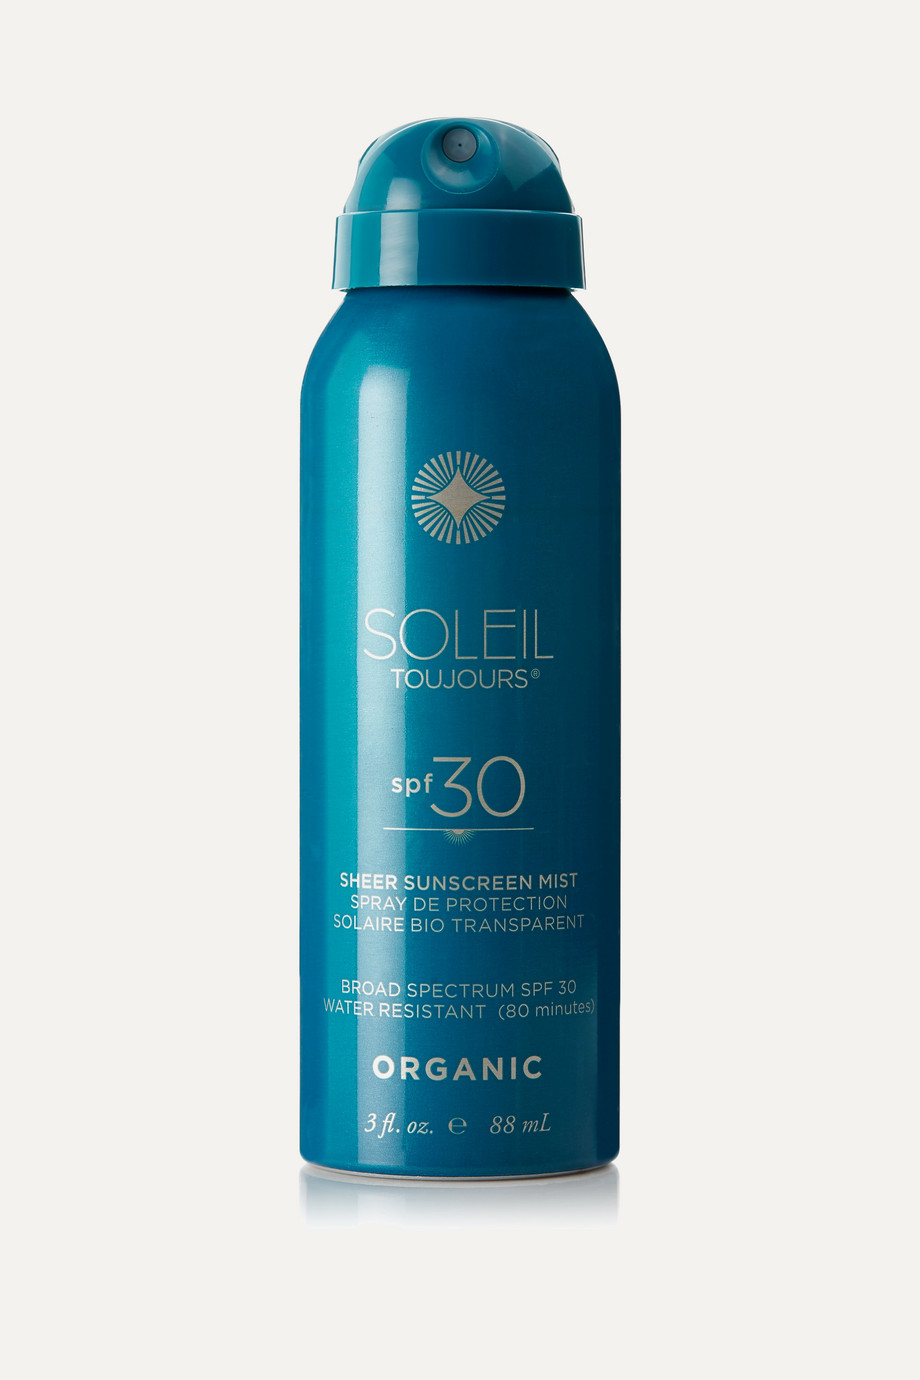 Soleil Toujours + NET SUSTAIN SPF30 Organic Sheer Sunscreen Mist, 88ml